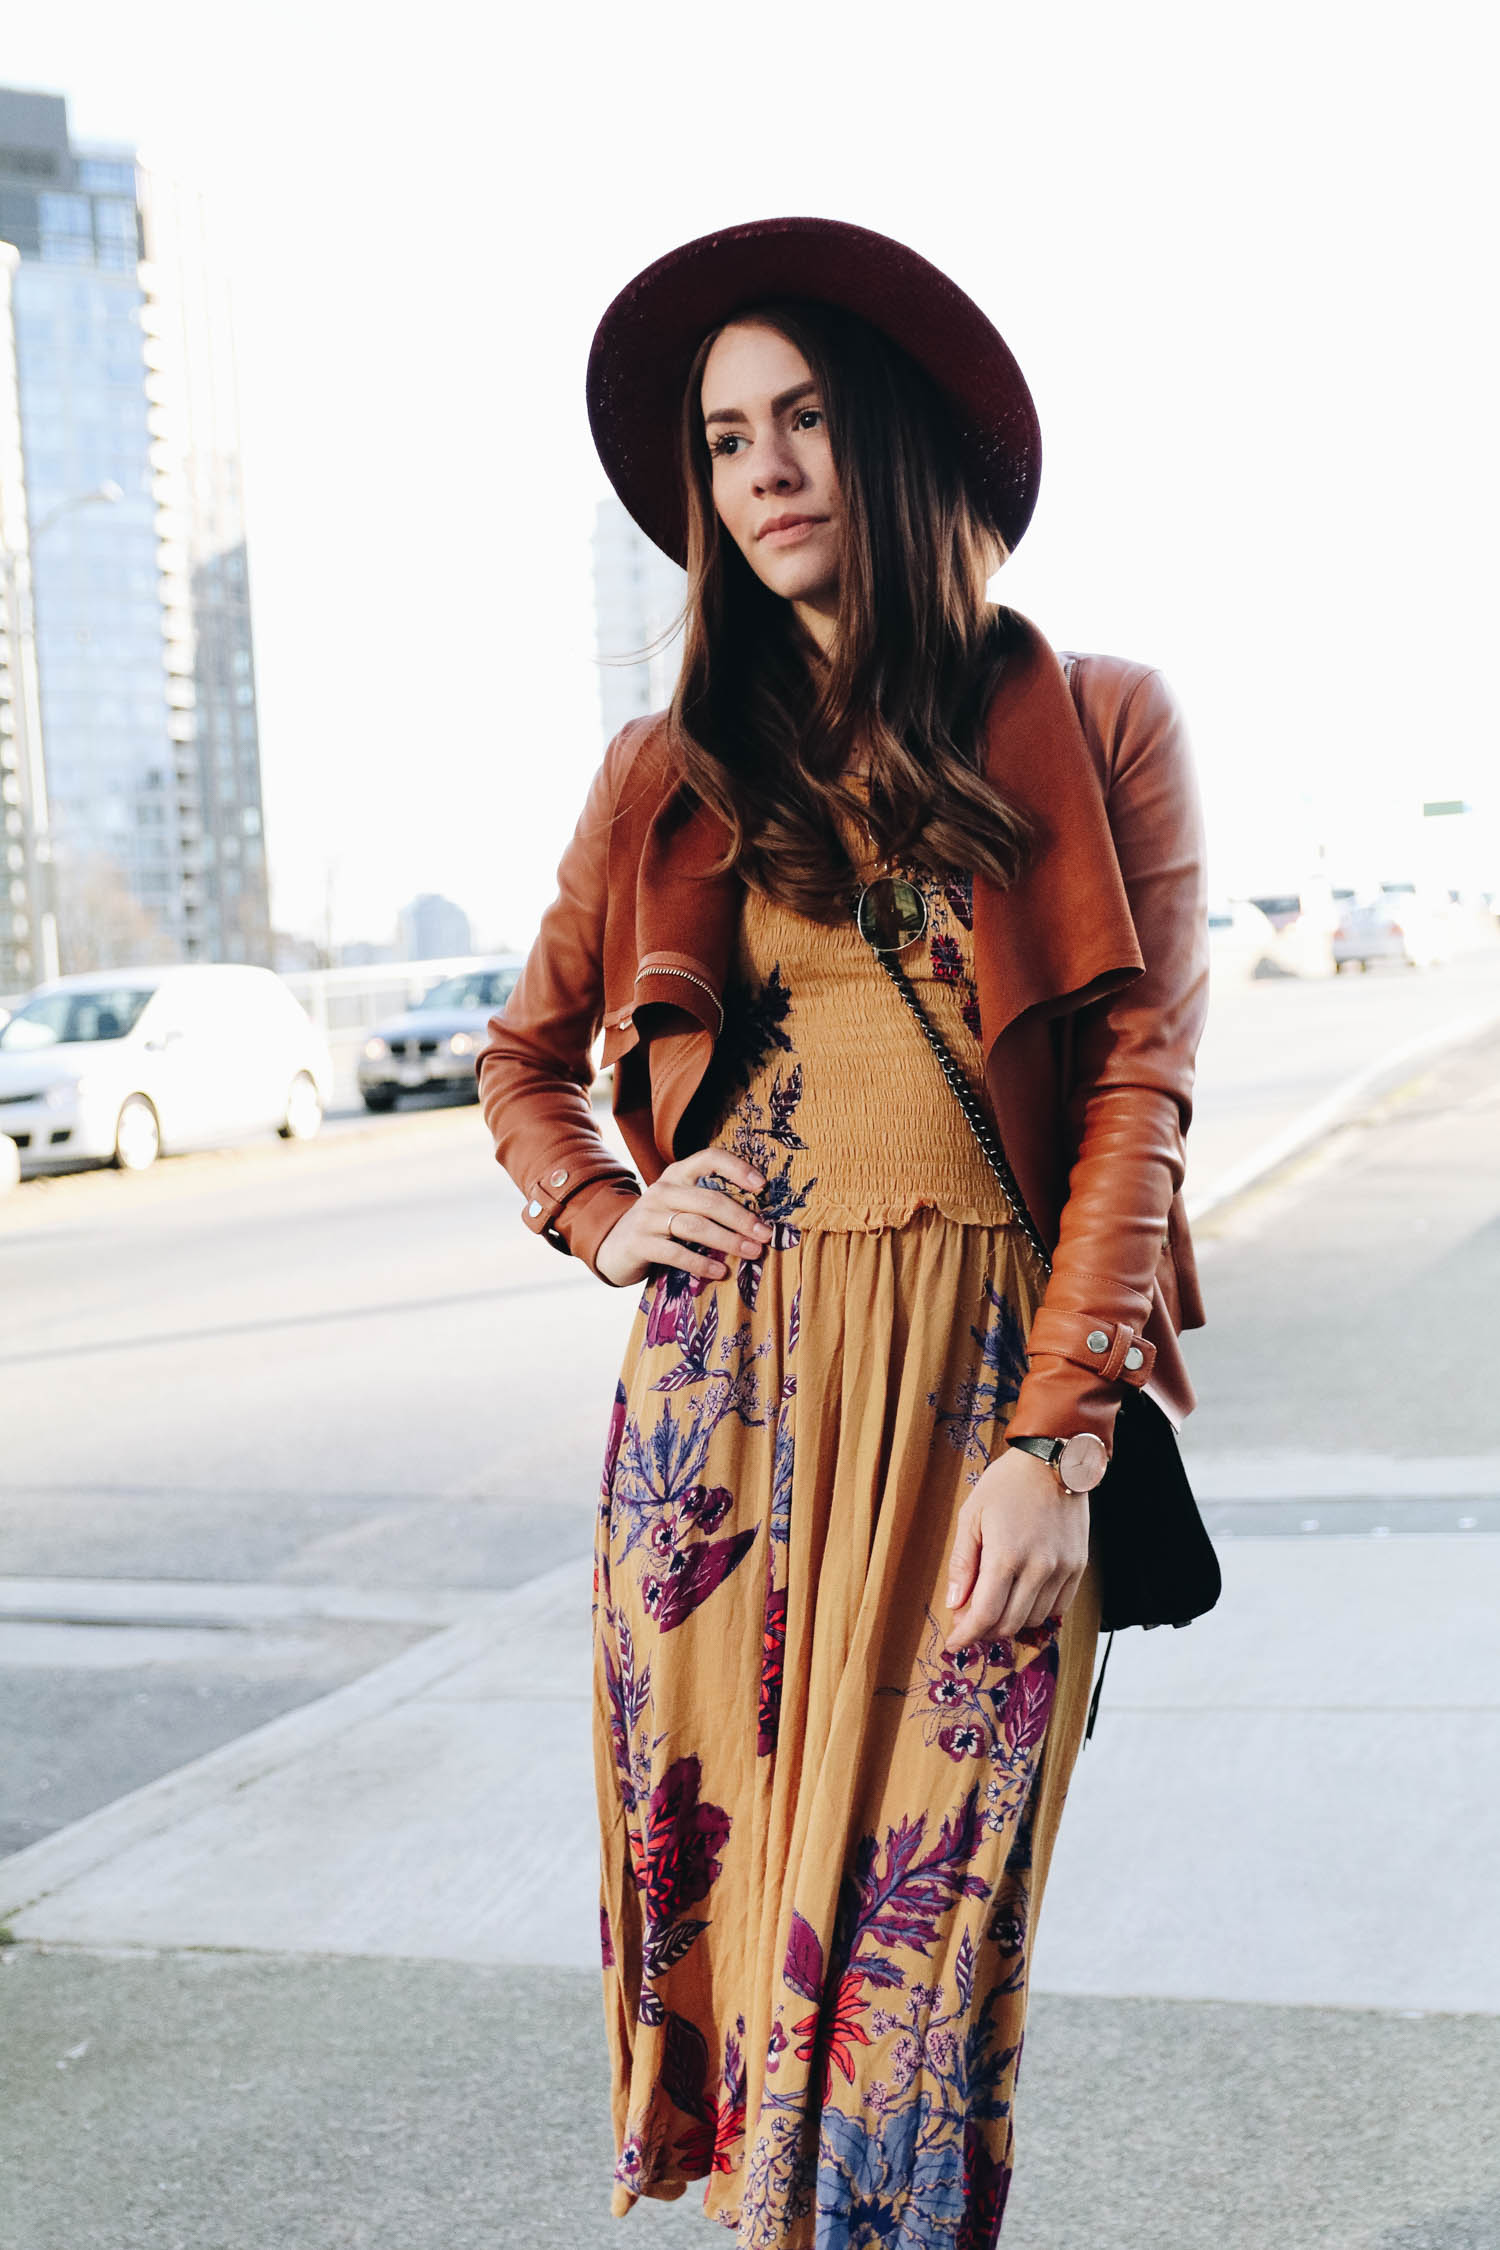 Wearing my floral dress and brown leather jacket in Vancouver